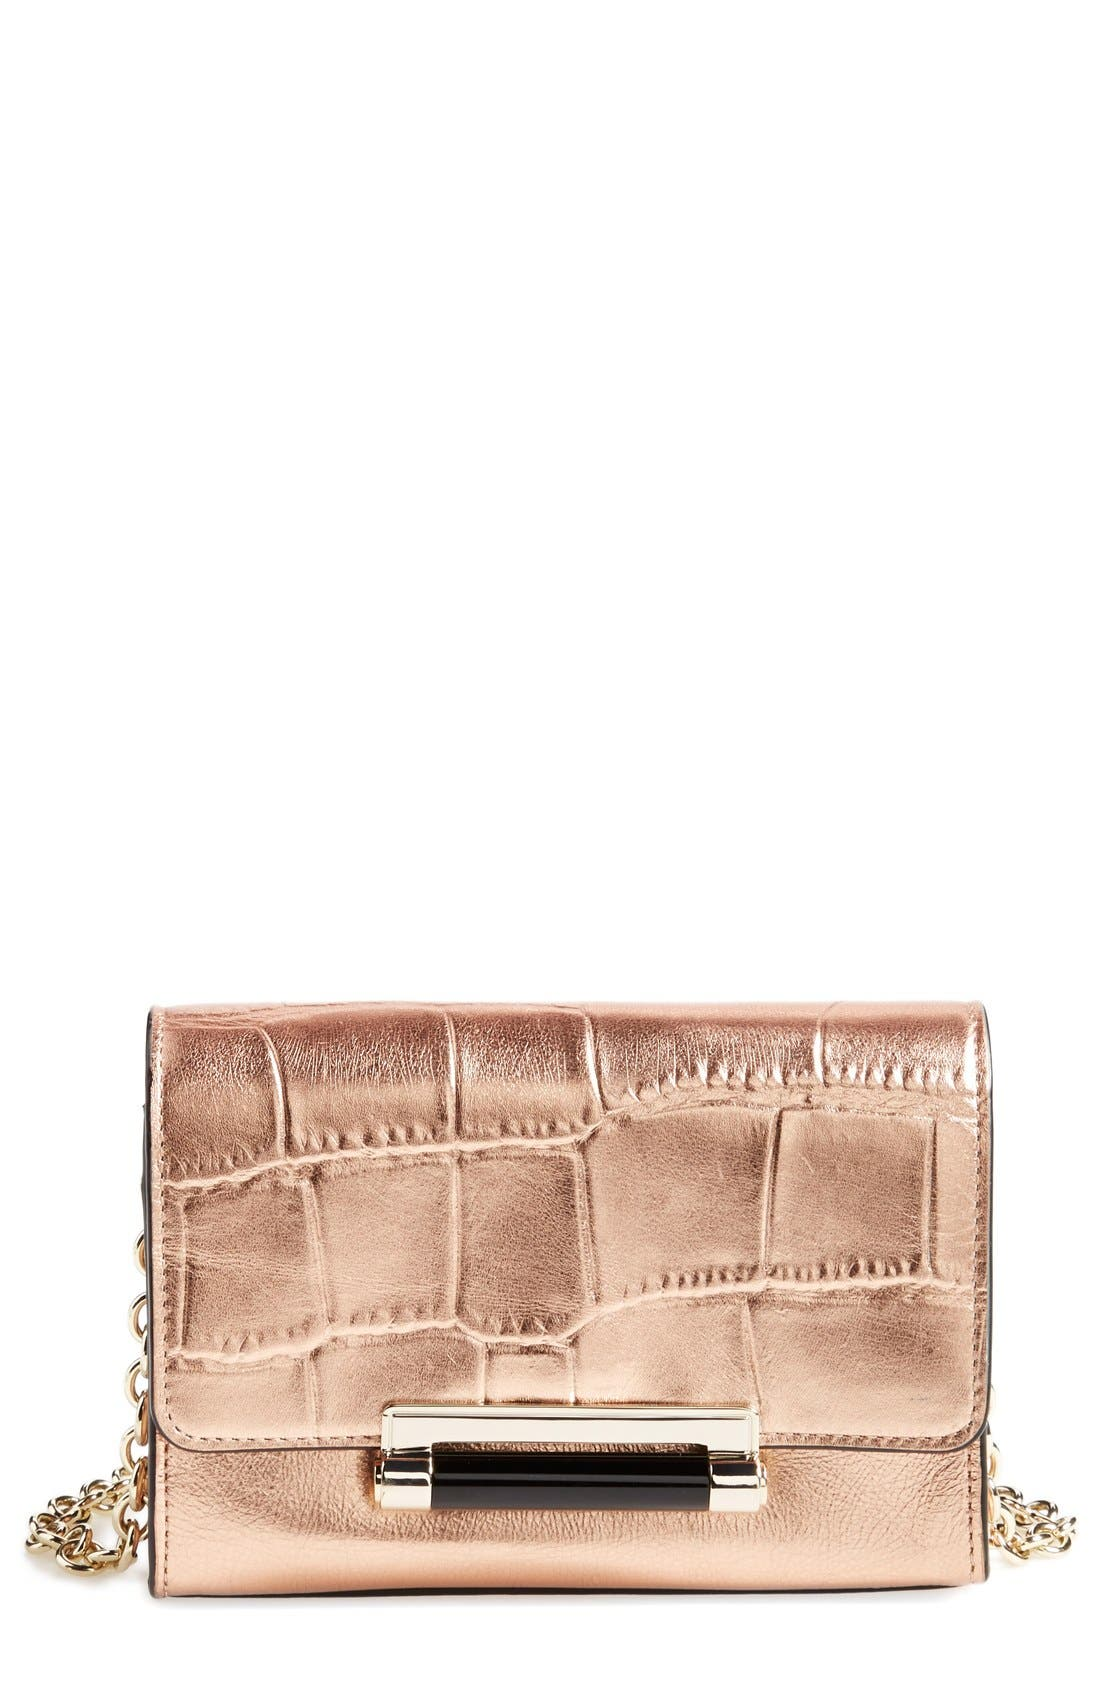 'Micro Mini 440' Croc Embossed Metallic Leather Crossbody Bag,                             Main thumbnail 1, color,                             711